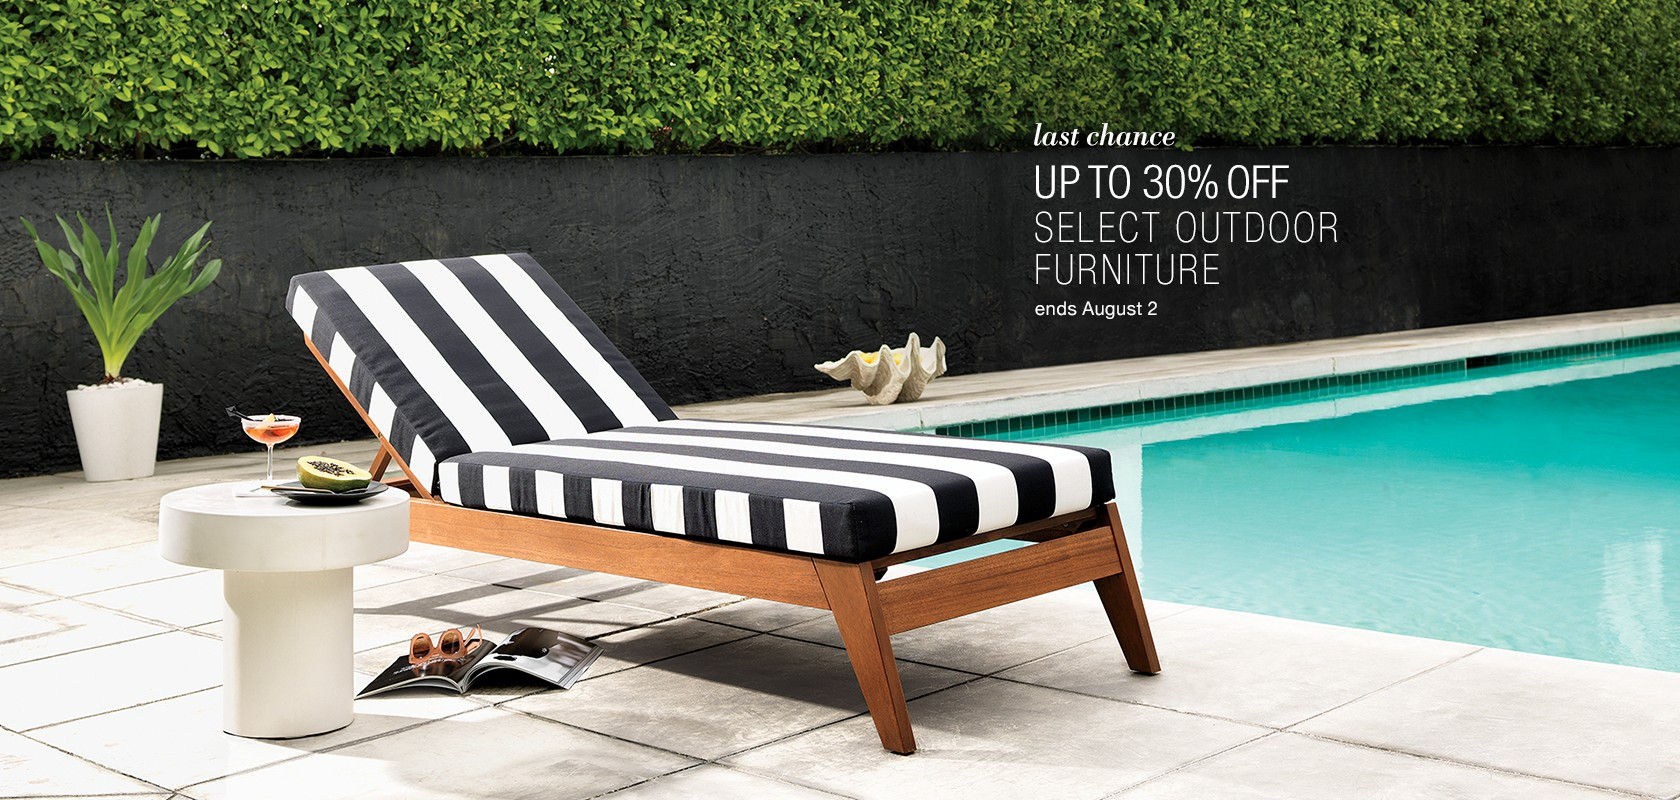 last chance. up to 30% off select outdoor furniture. ends August 2